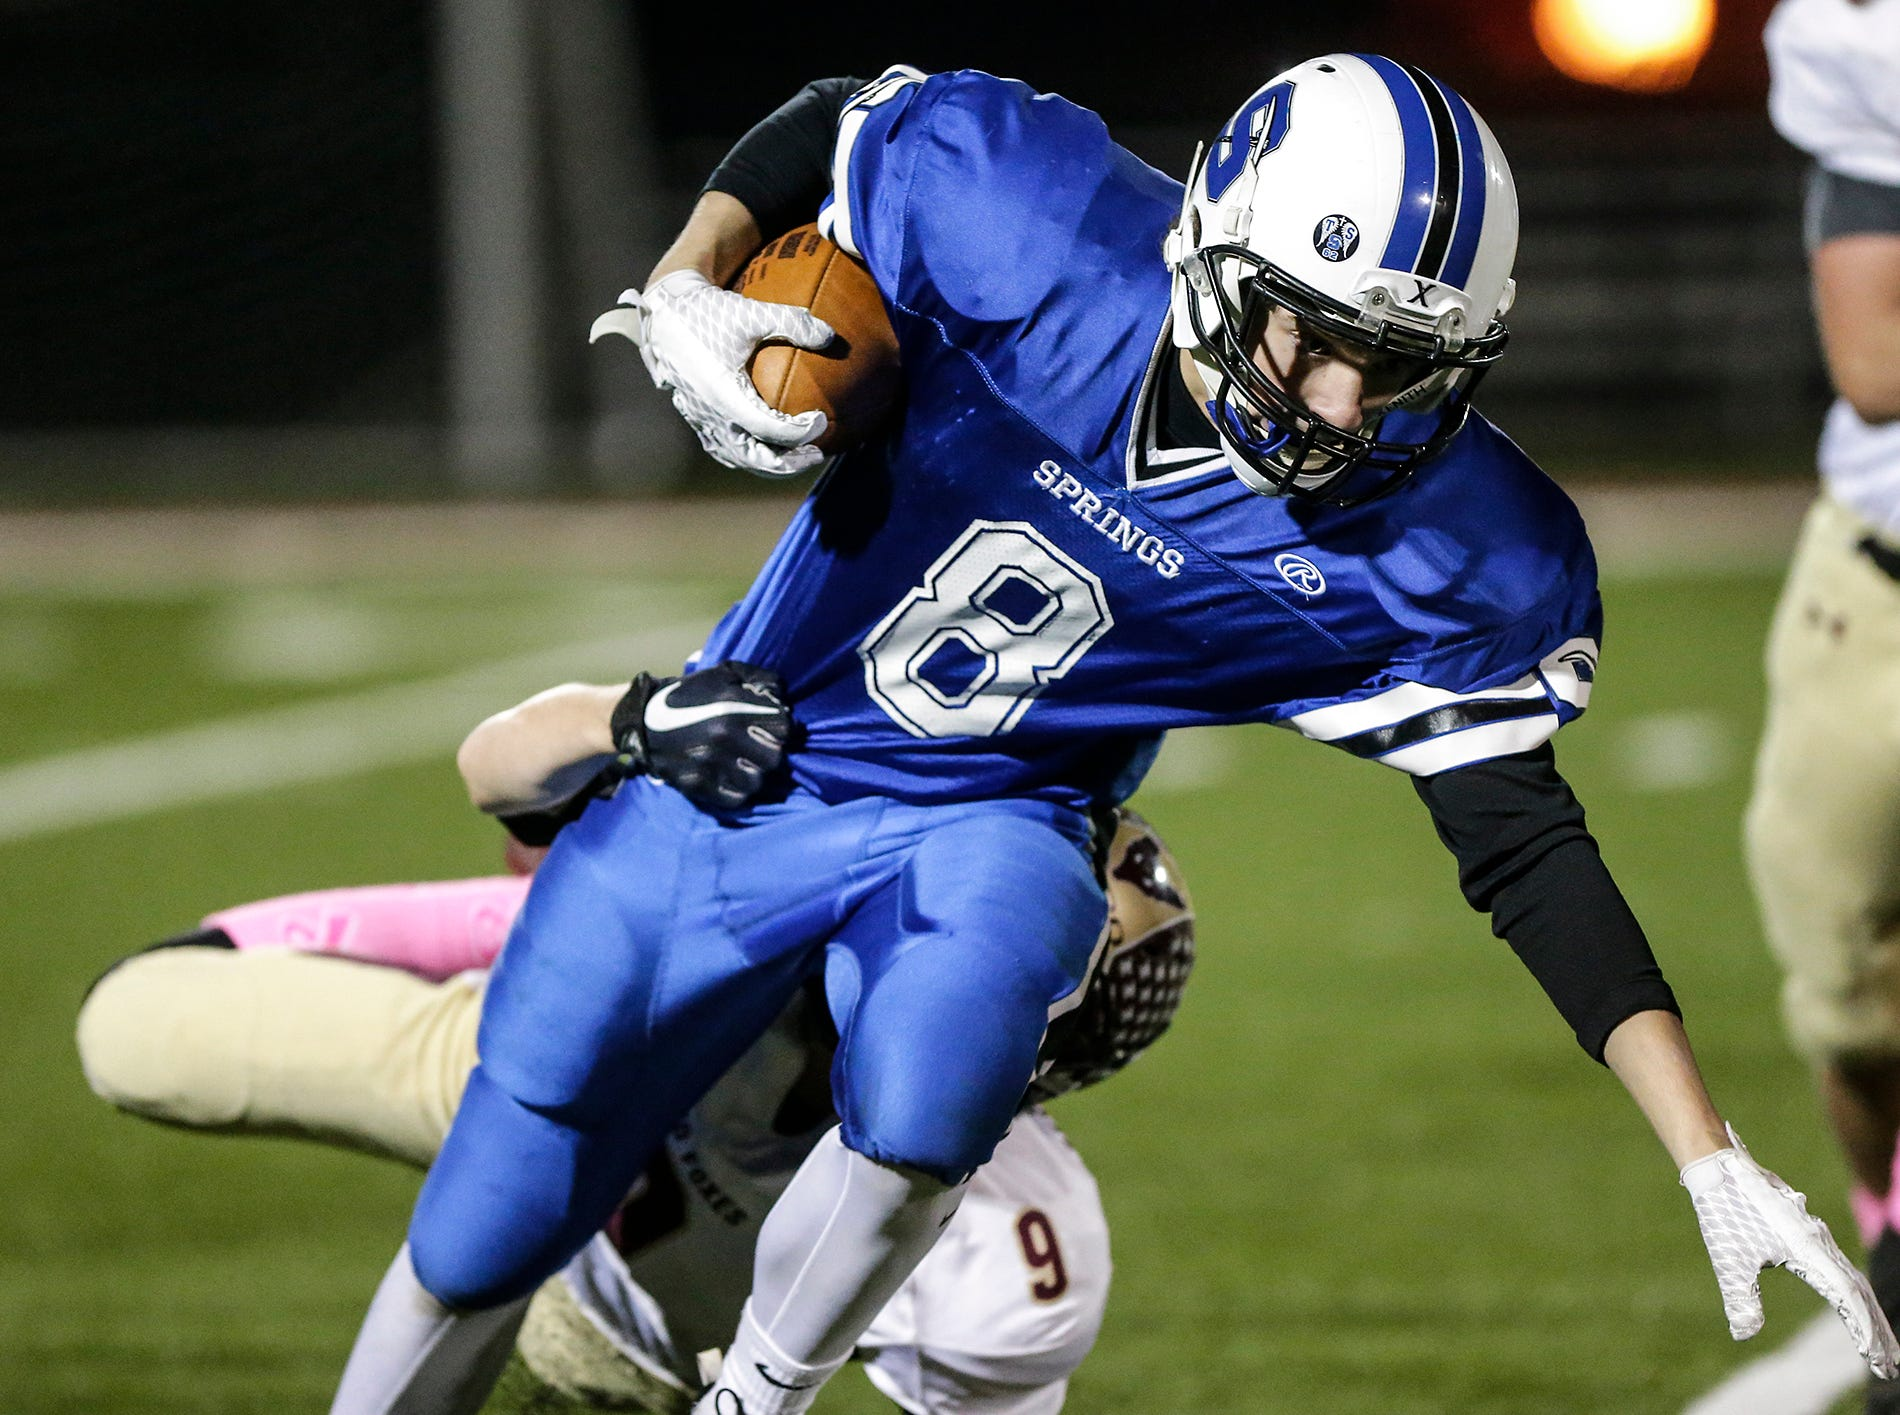 St. Mary's Springs Academy football's David Mueller gets tackled by Omro High School's Cooper Krockstrom Friday, October 26, 2018 during their WIAA division five, level 2 playoff game played in Lomira, Wisconsin. Springs won the match-up 33-20. Doug Raflik/USA TODAY NETWORK-Wisconsin